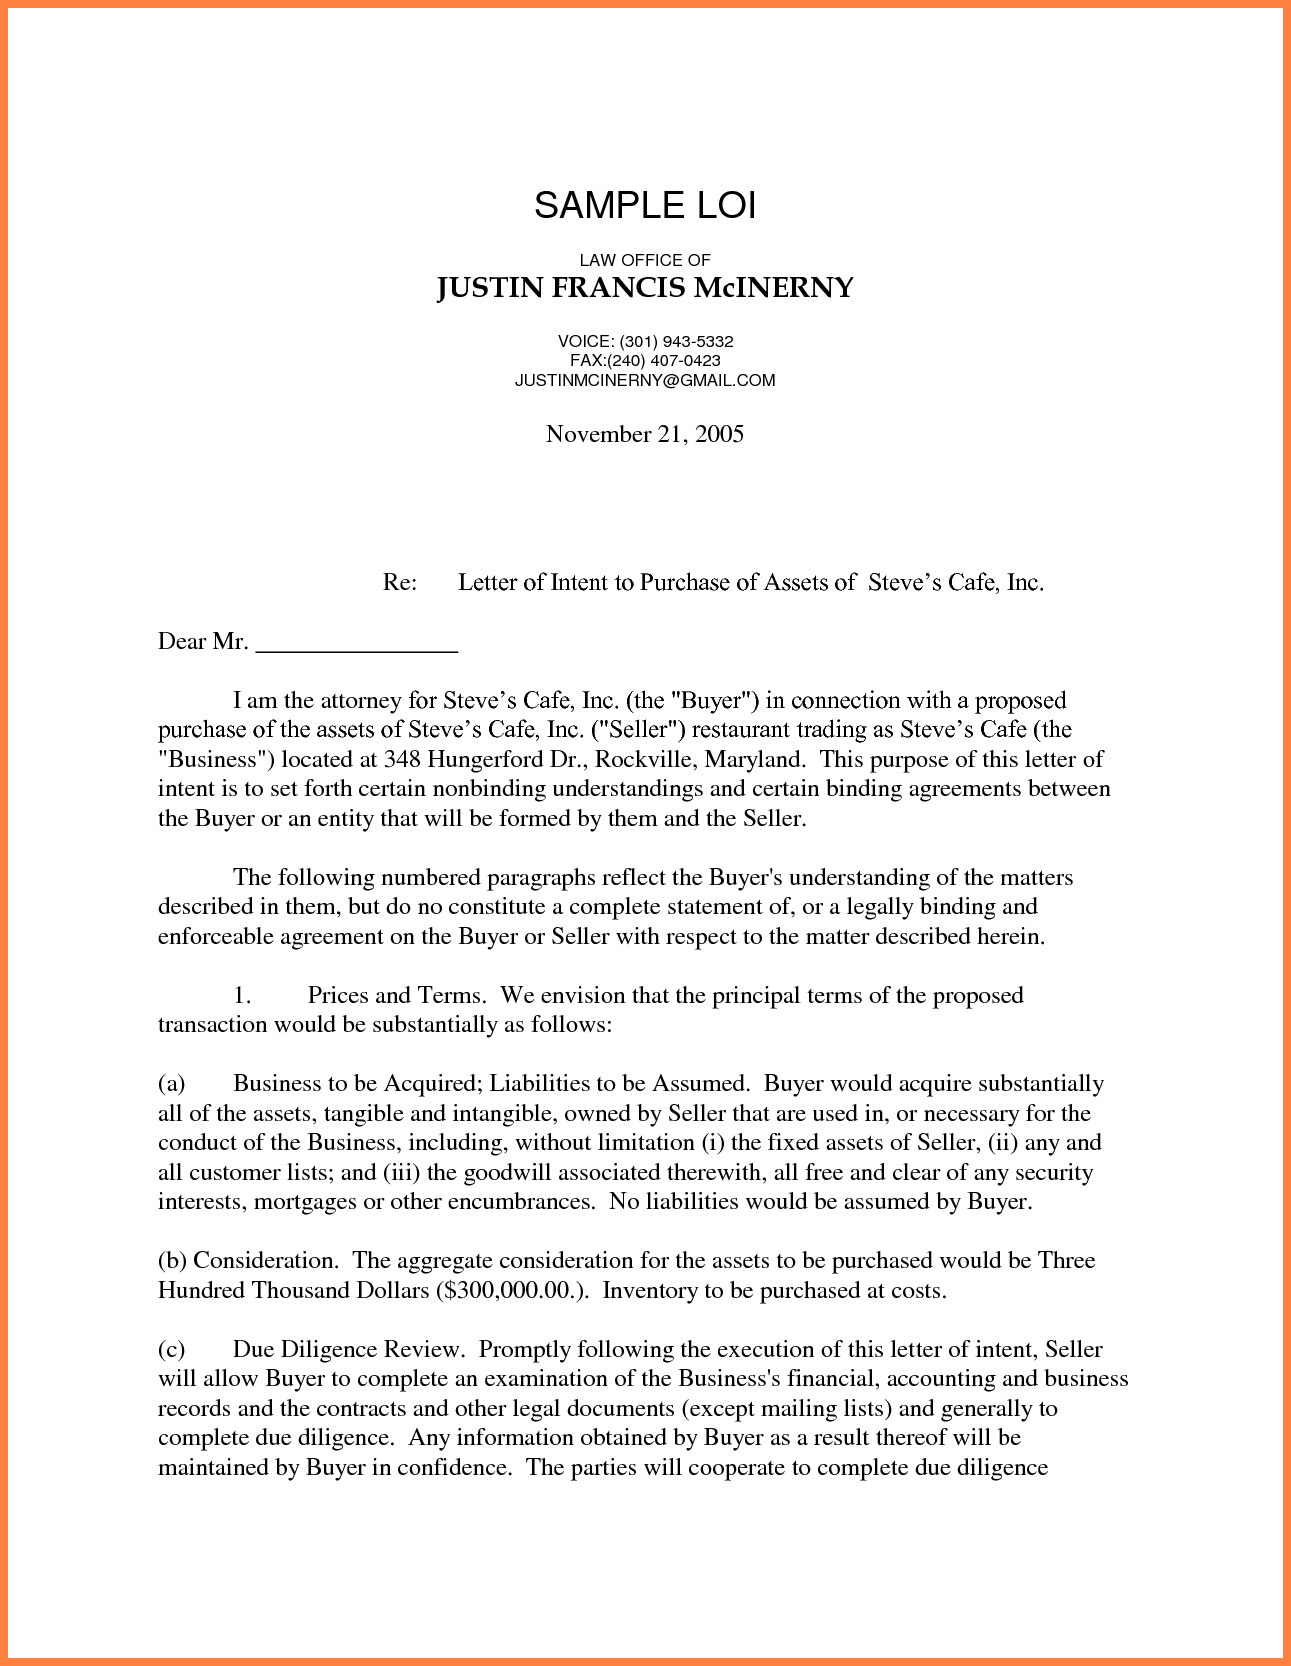 Real Estate Letter Of Intent Template Free - Letter Intento Purchase Real Estate Freeemplate Uk Buy Land